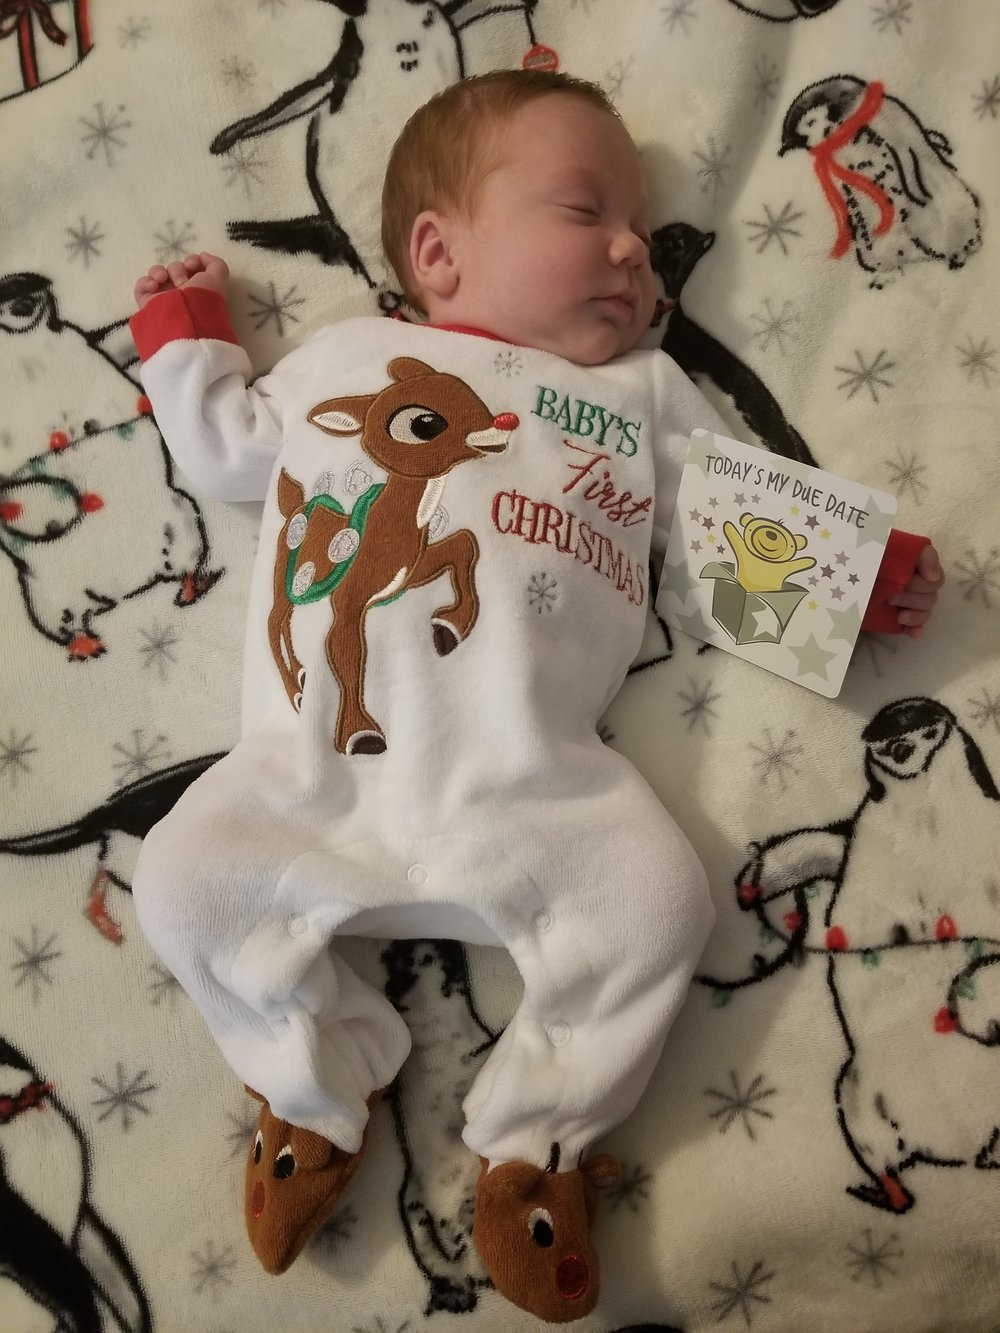 Cassidy's due date was Christmas day!